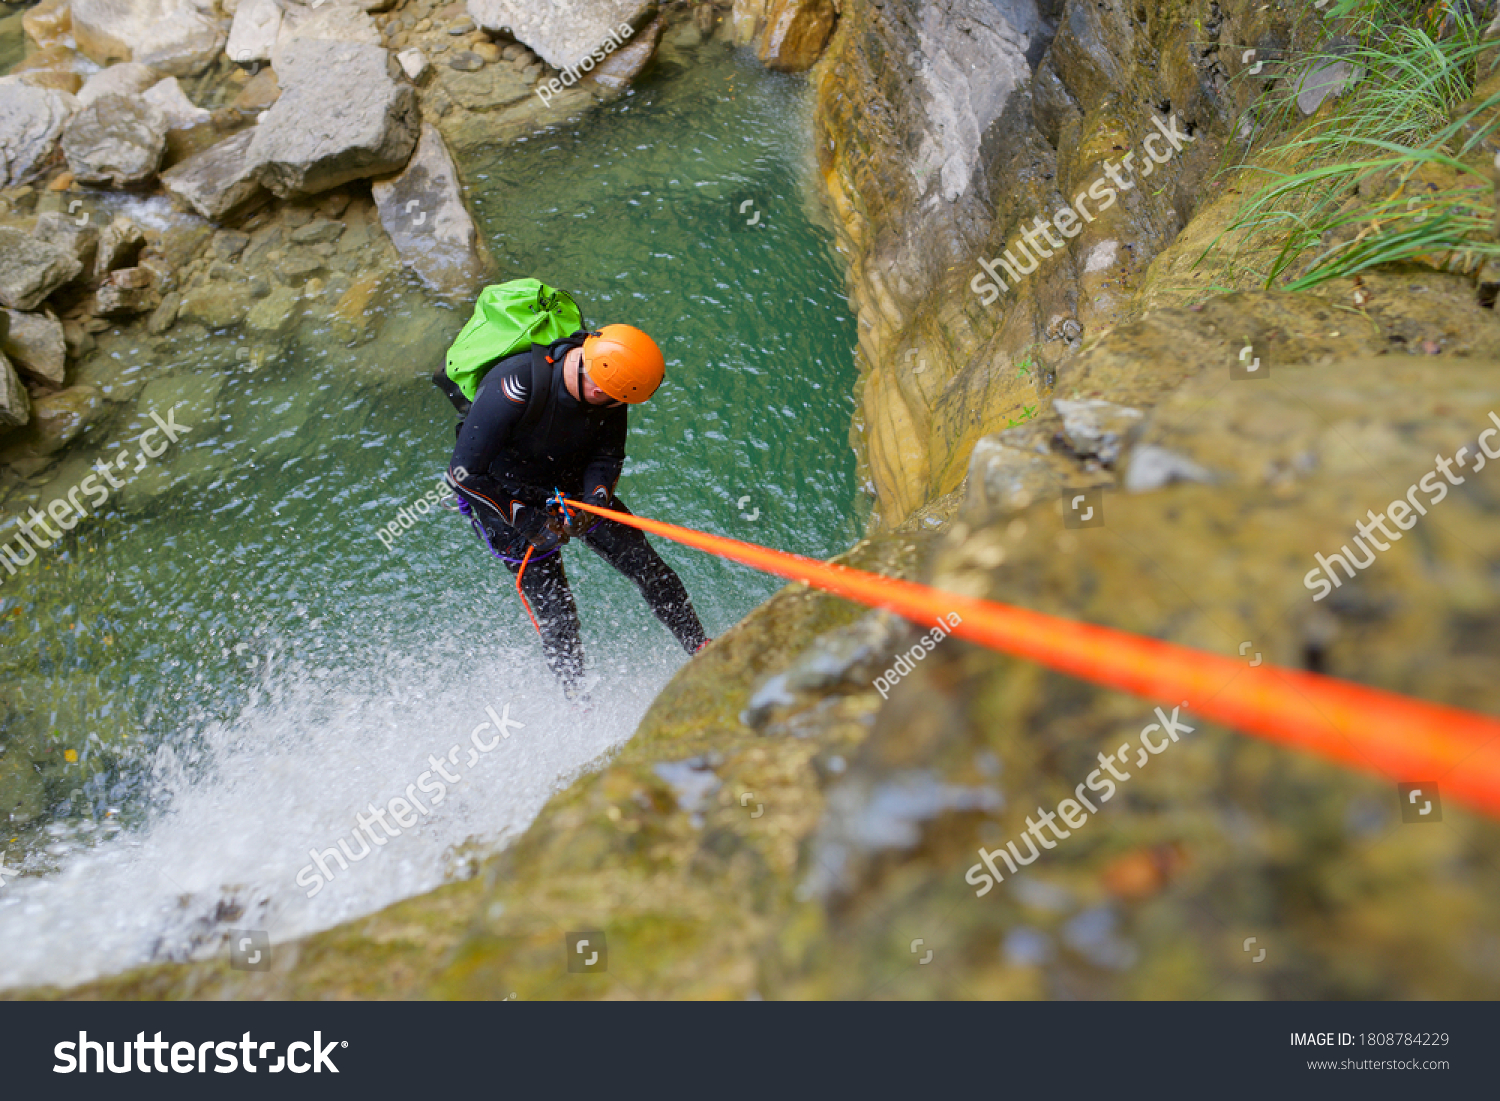 Canyoneering Furco Canyon in Pyrenees, Broto village, Huesca Province in Spain. #1808784229